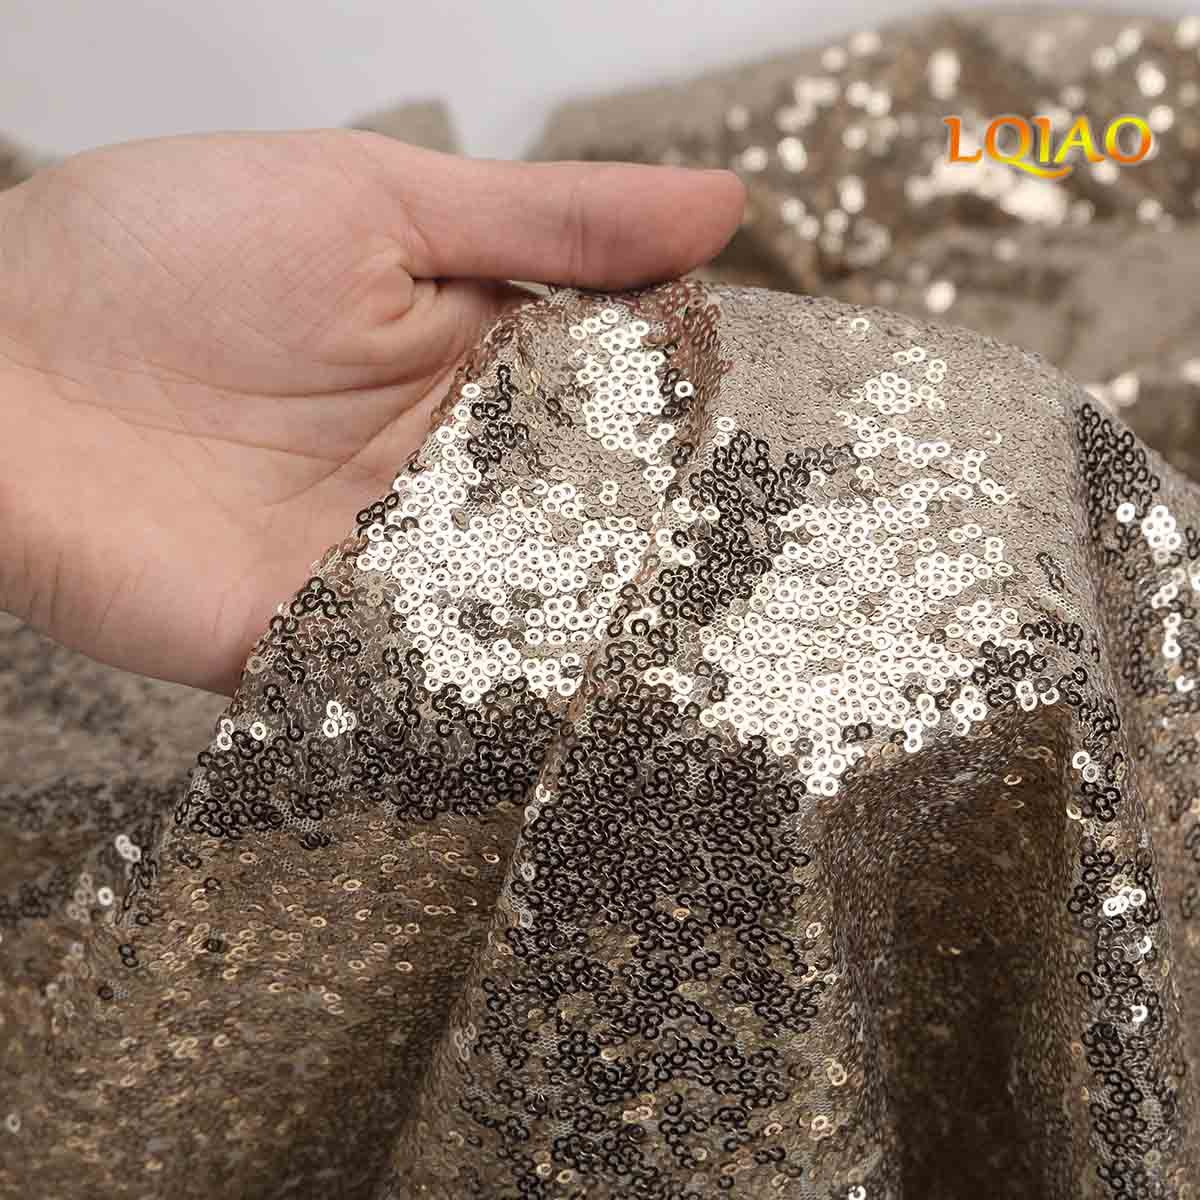 LQIAO Sequin Curtain 10X10FT-Light Gold Sequin Backdrop Wedding Photo Booth Door Window Curtain for Halloween Party Wedding Decoration by LQIAO (Image #3)